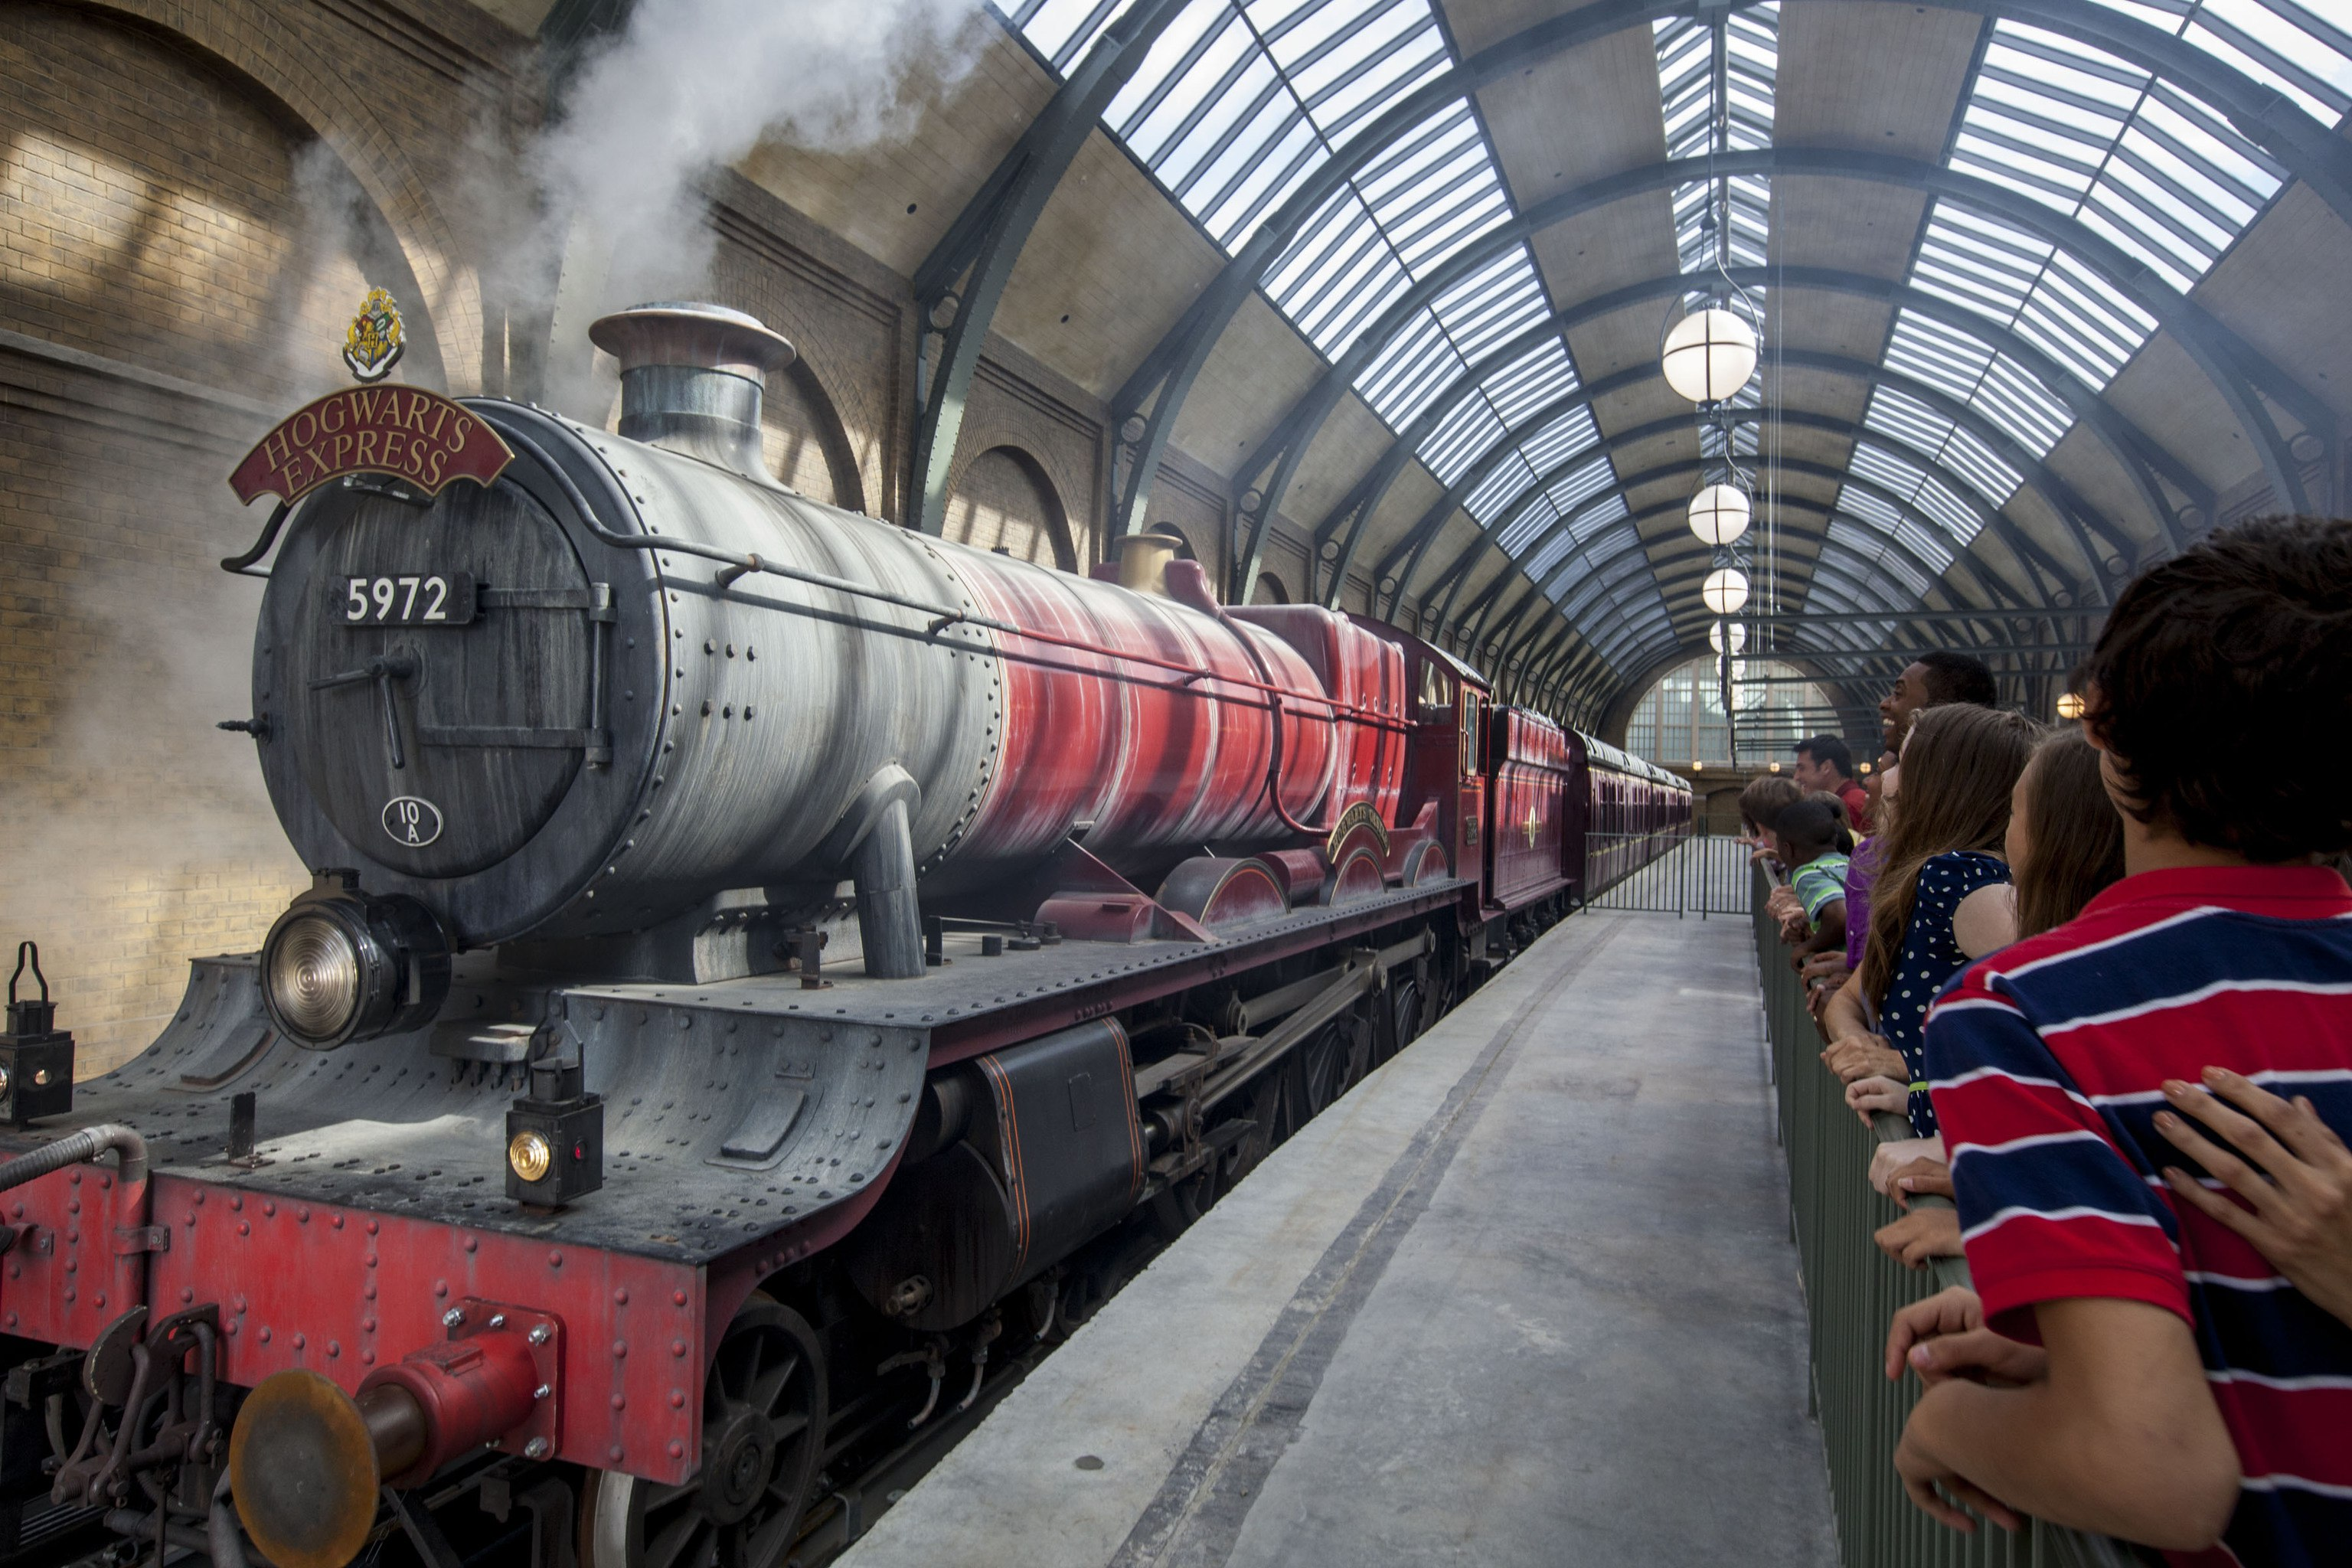 Hogwarts Express in the station